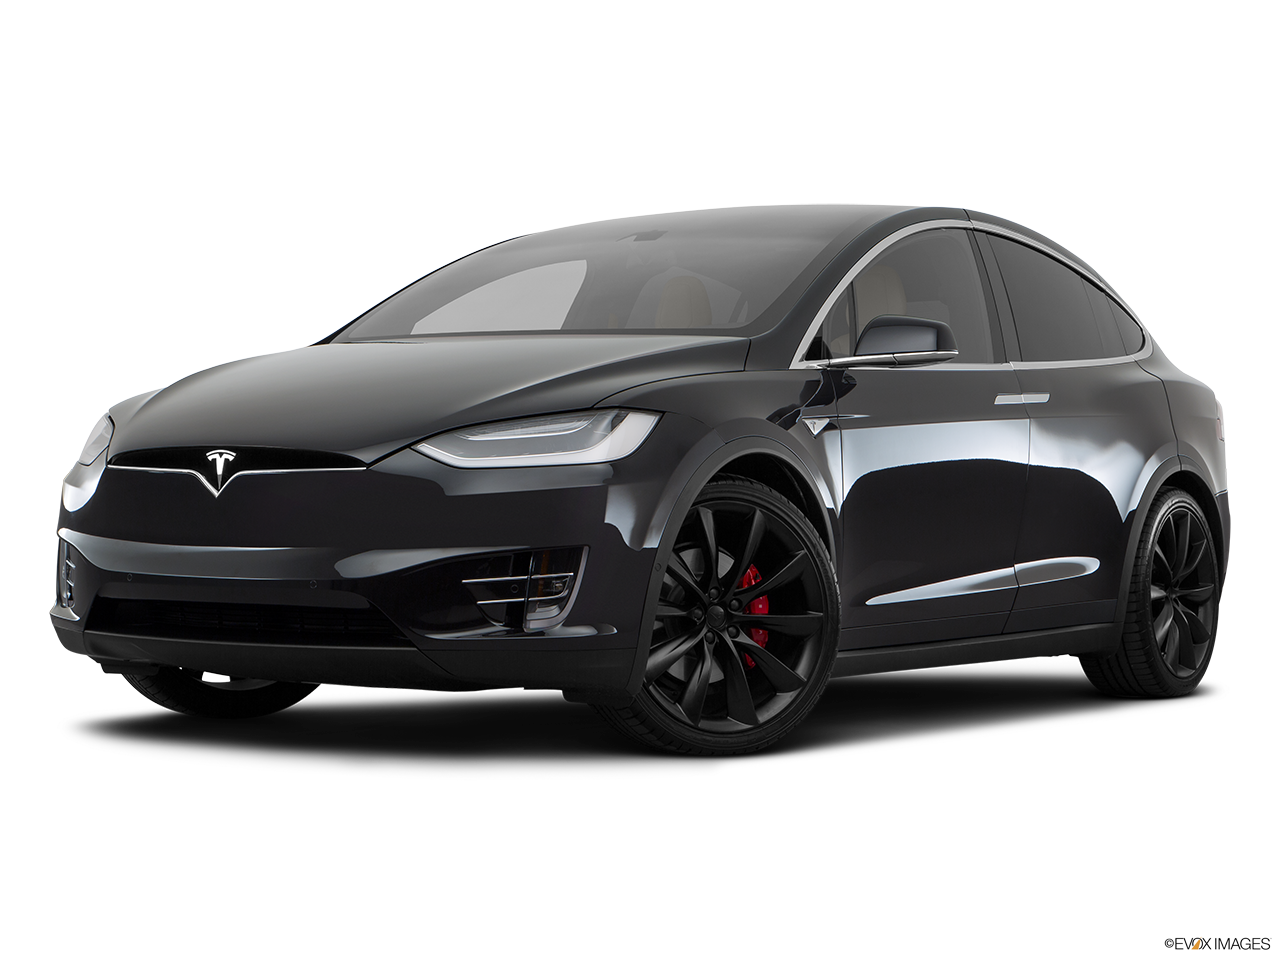 Three quart view of the Tesla Model X